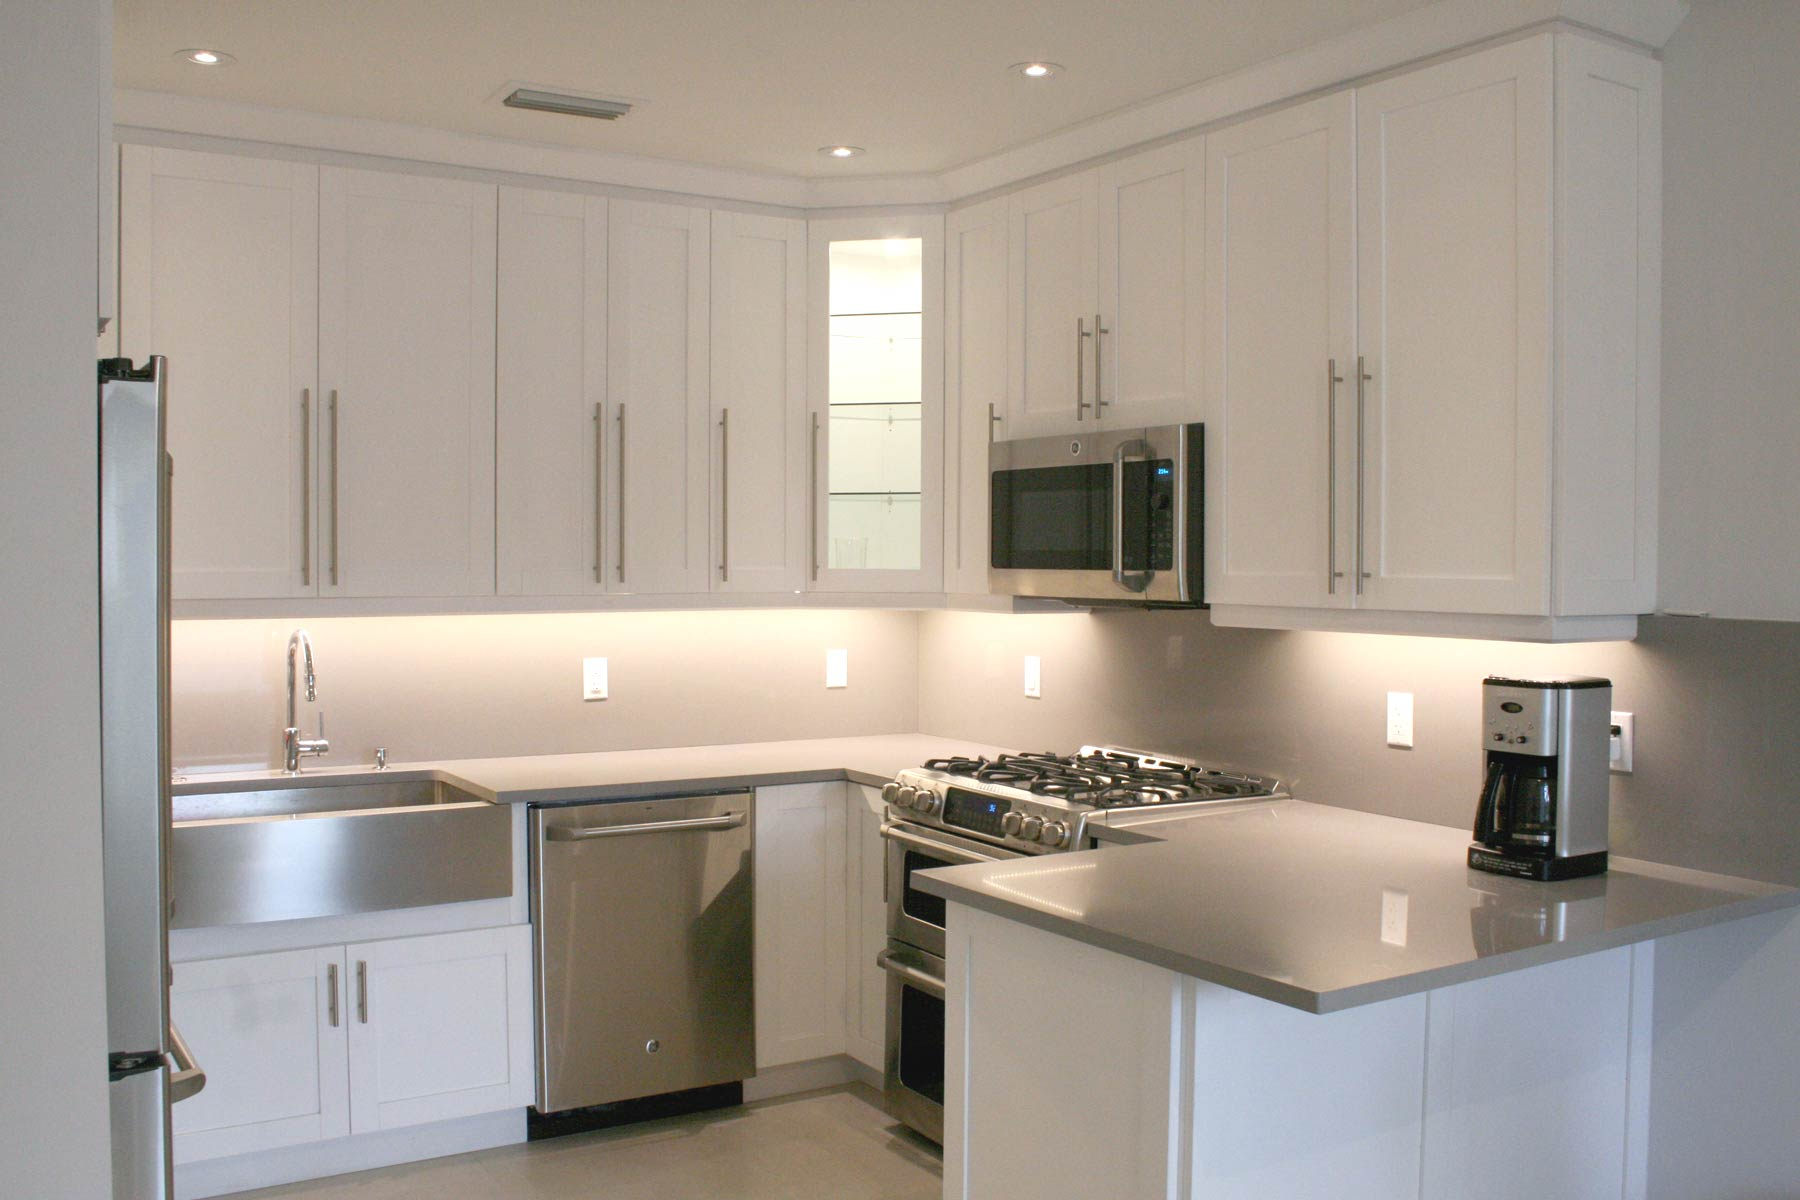 Previously enclosed Kitchen remodeled to modern style